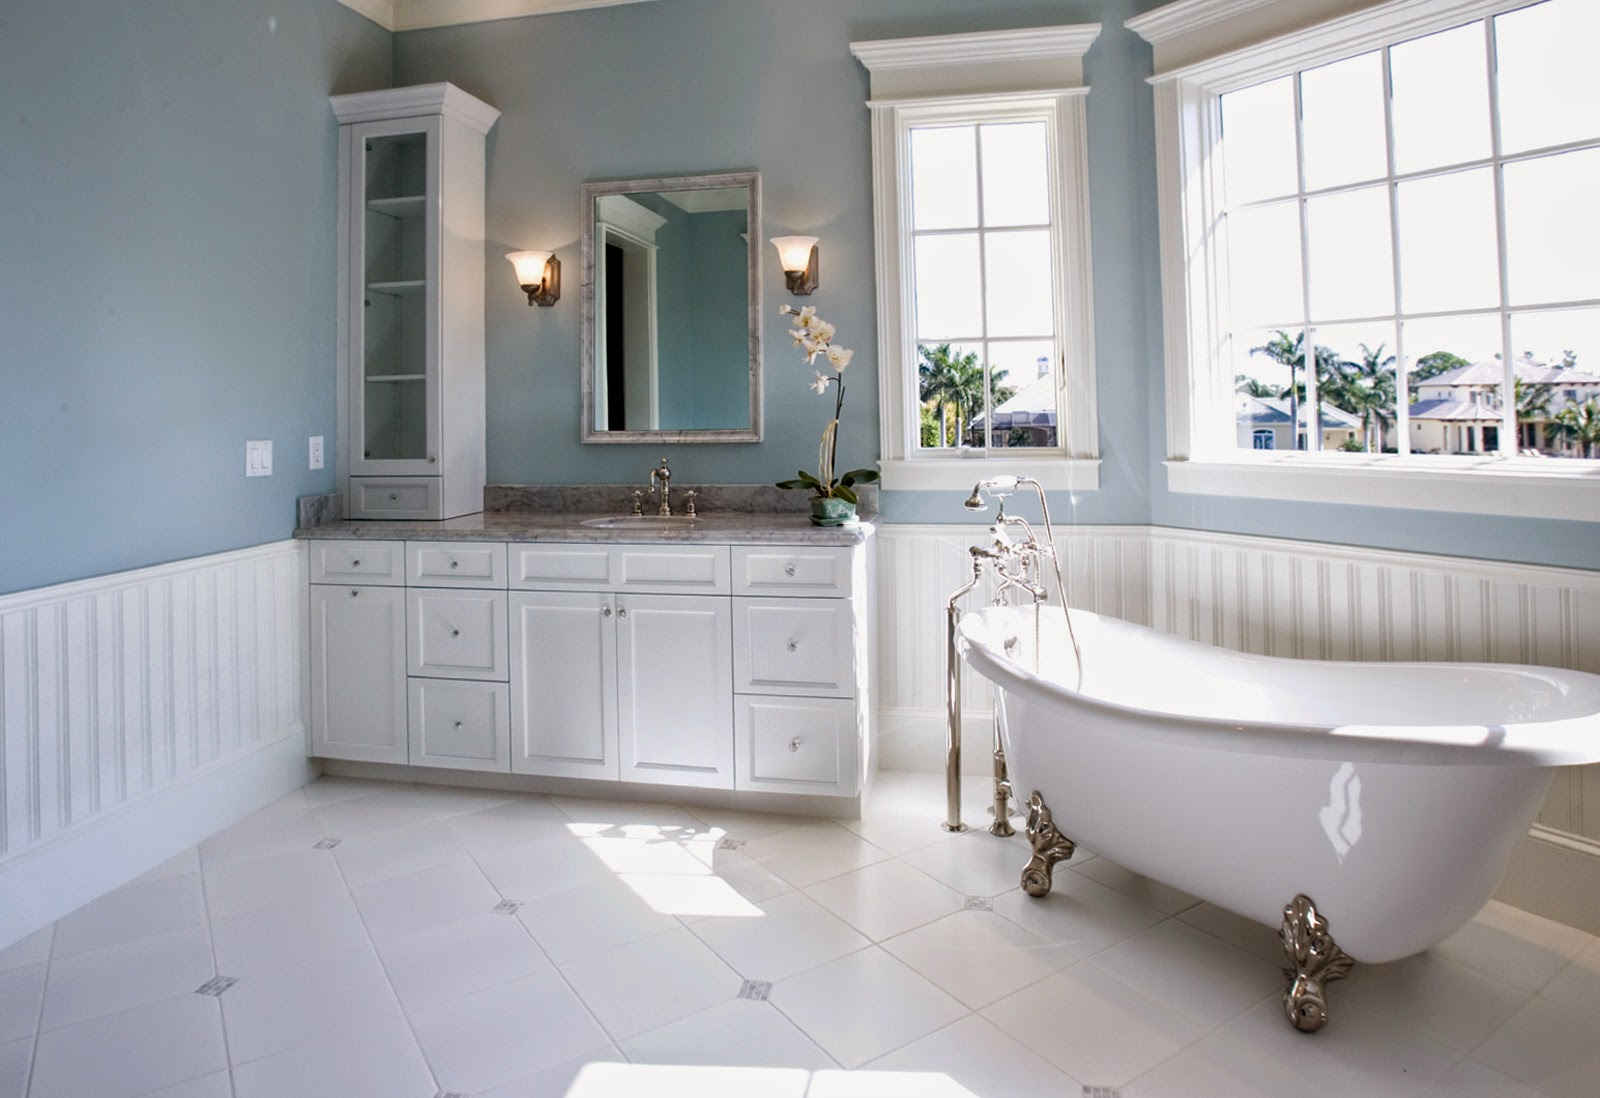 Top 10 beautiful bathroom design 2014 home interior blog for Bathroom designs